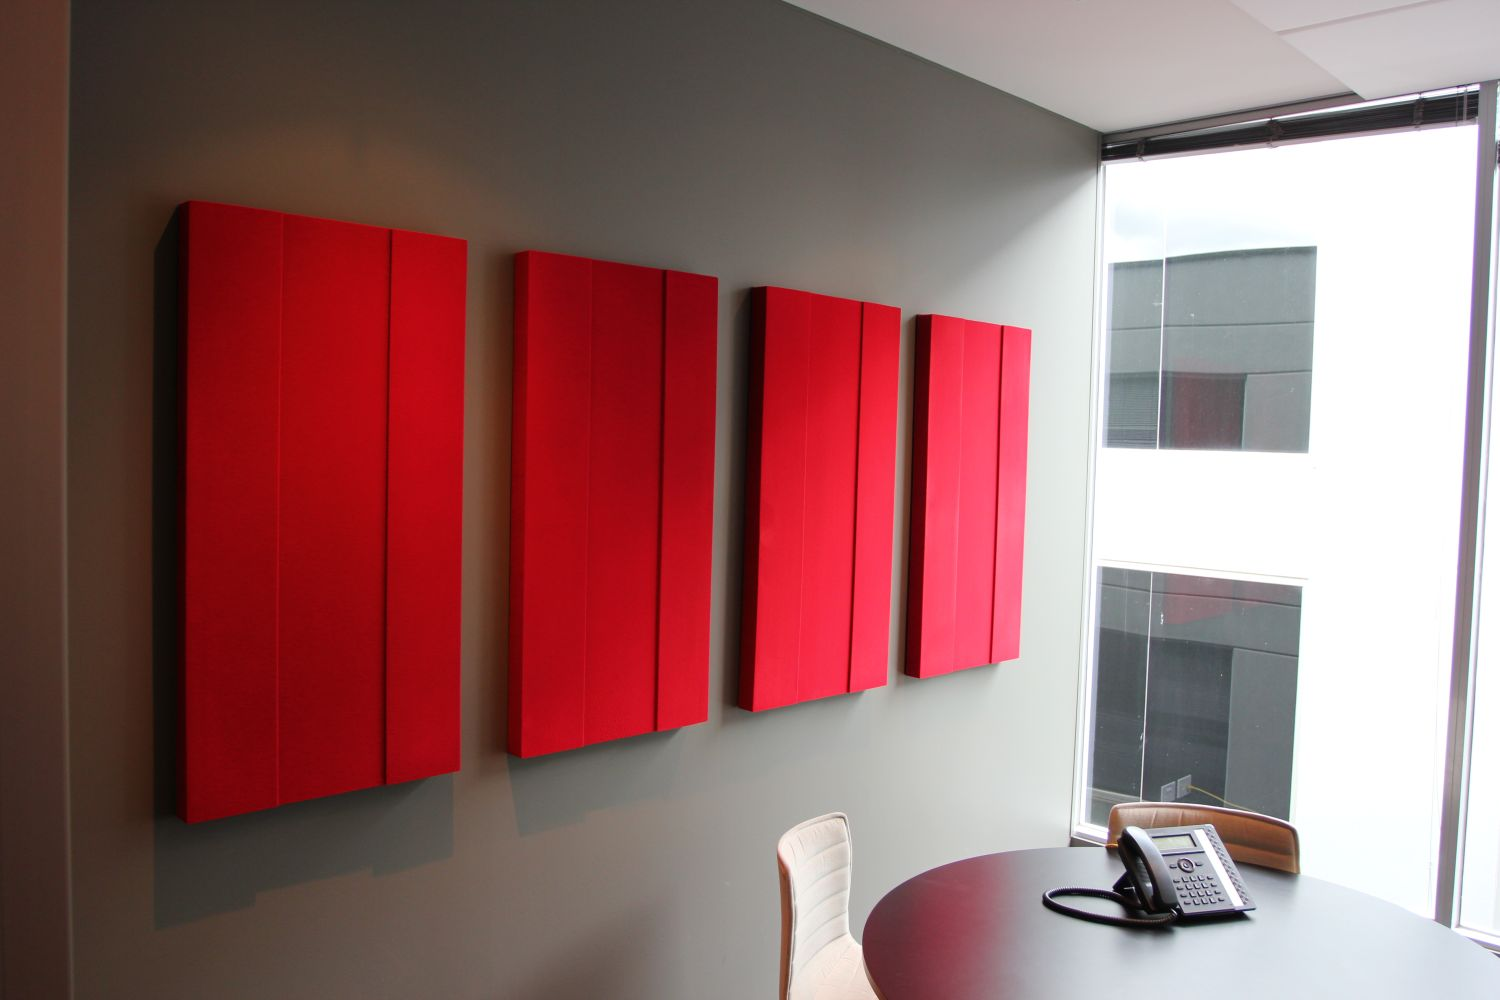 Charmant How Do Decorative Acoustic Panels Impact Room Acoustics?